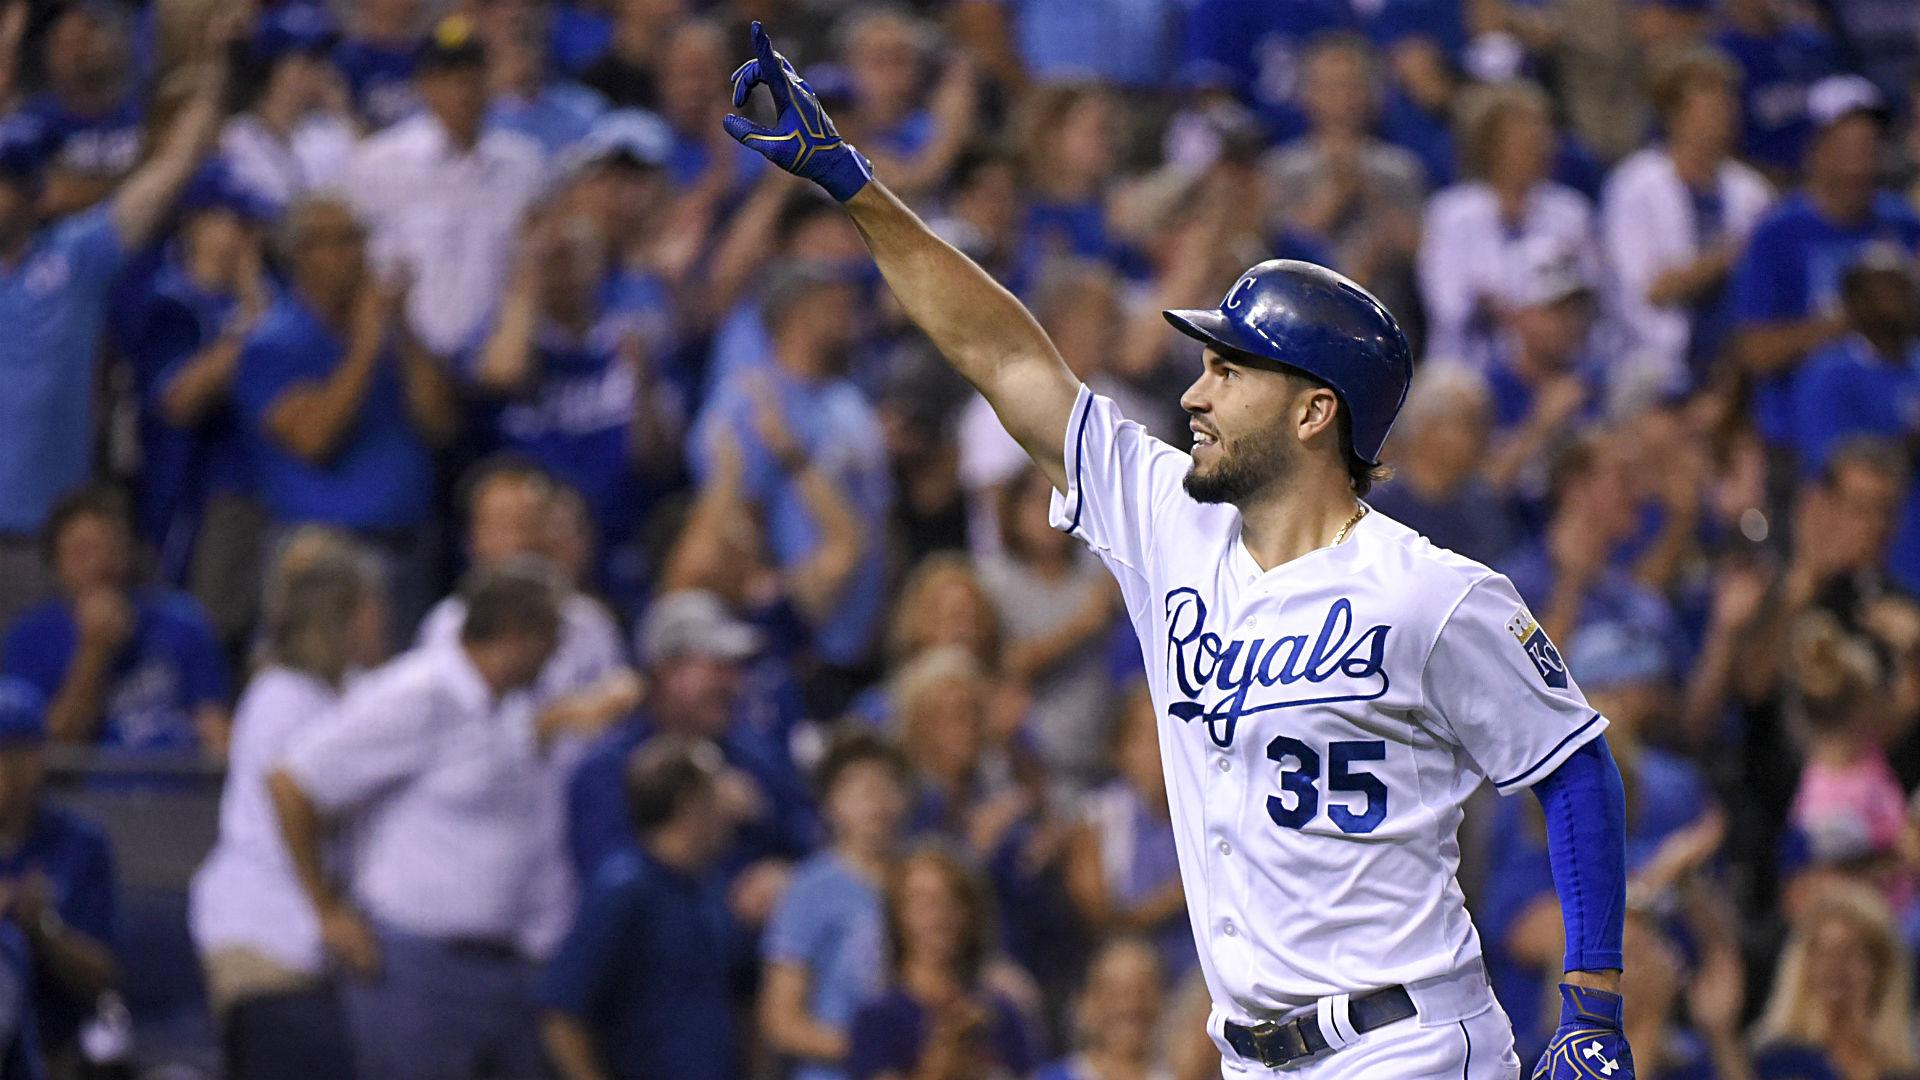 Royals clinch playoff spot with first division title in 30 years